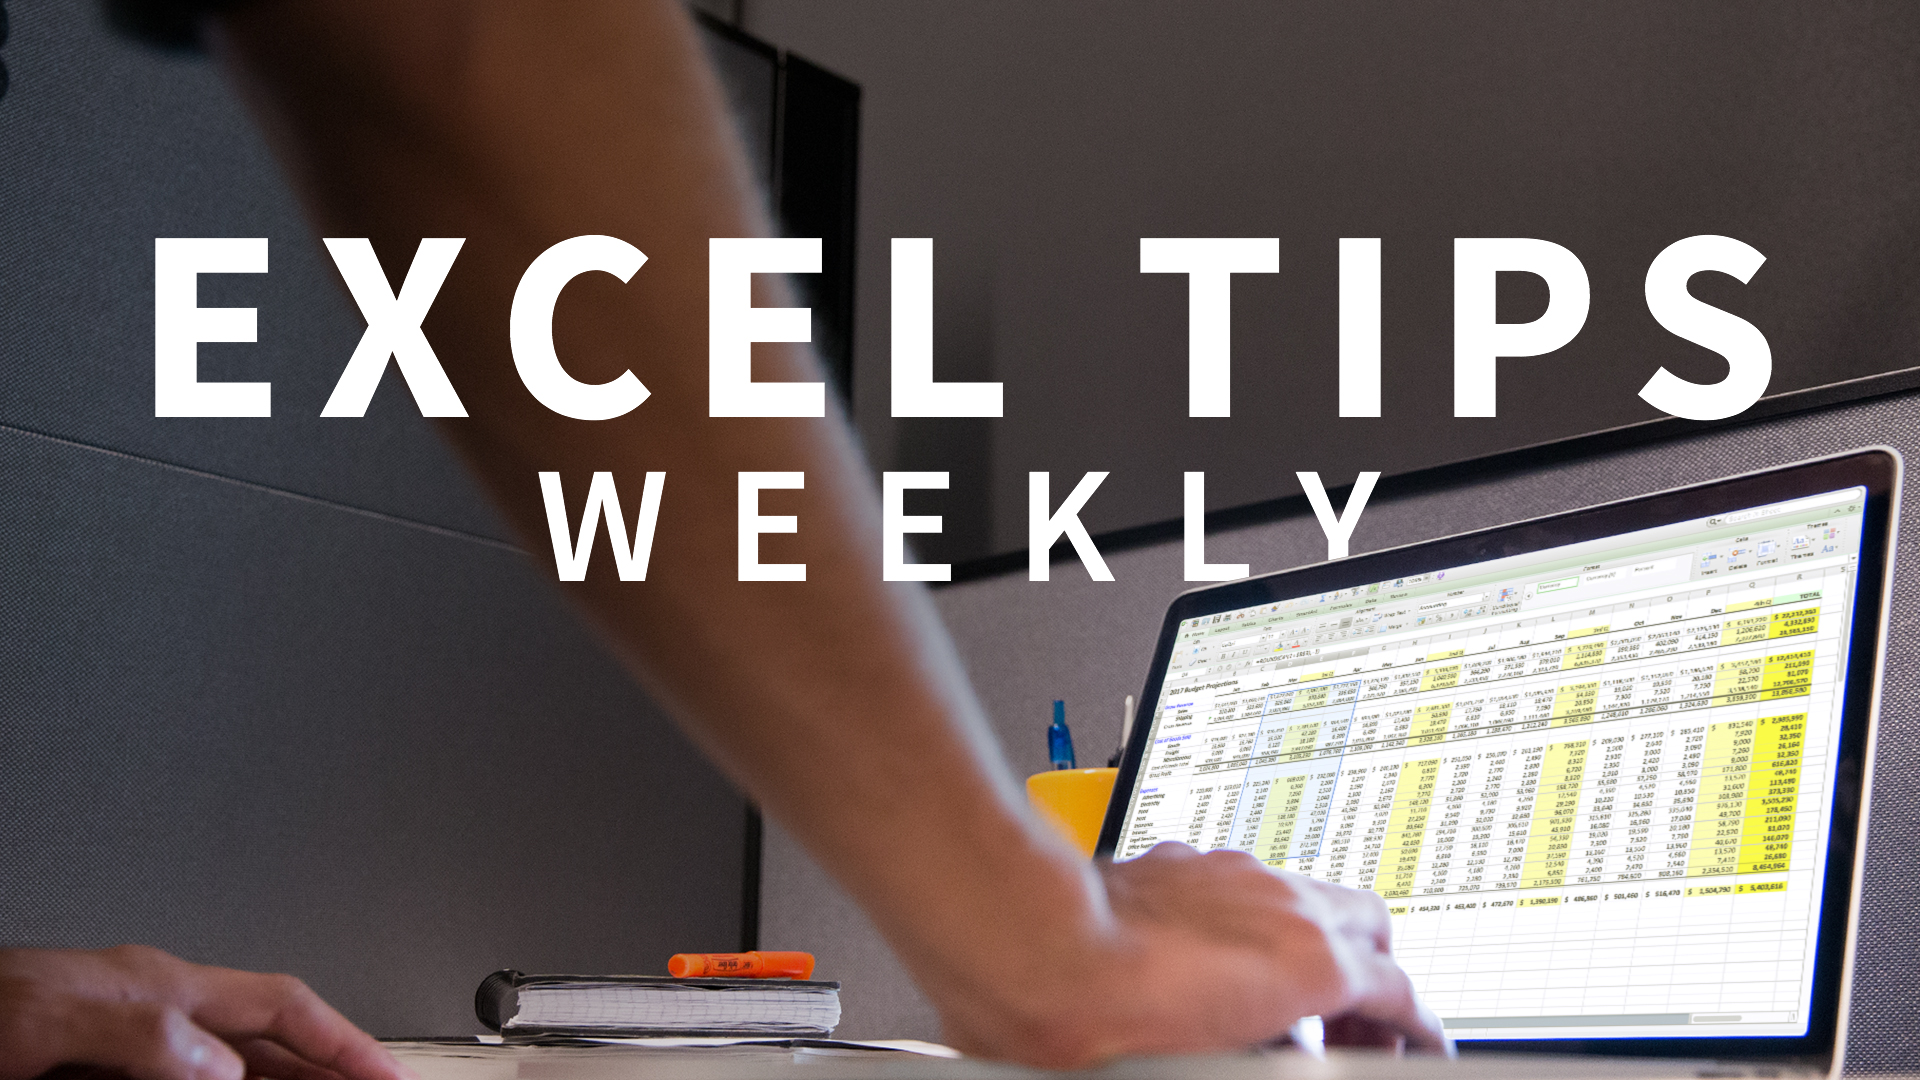 Excel Tips Weekly